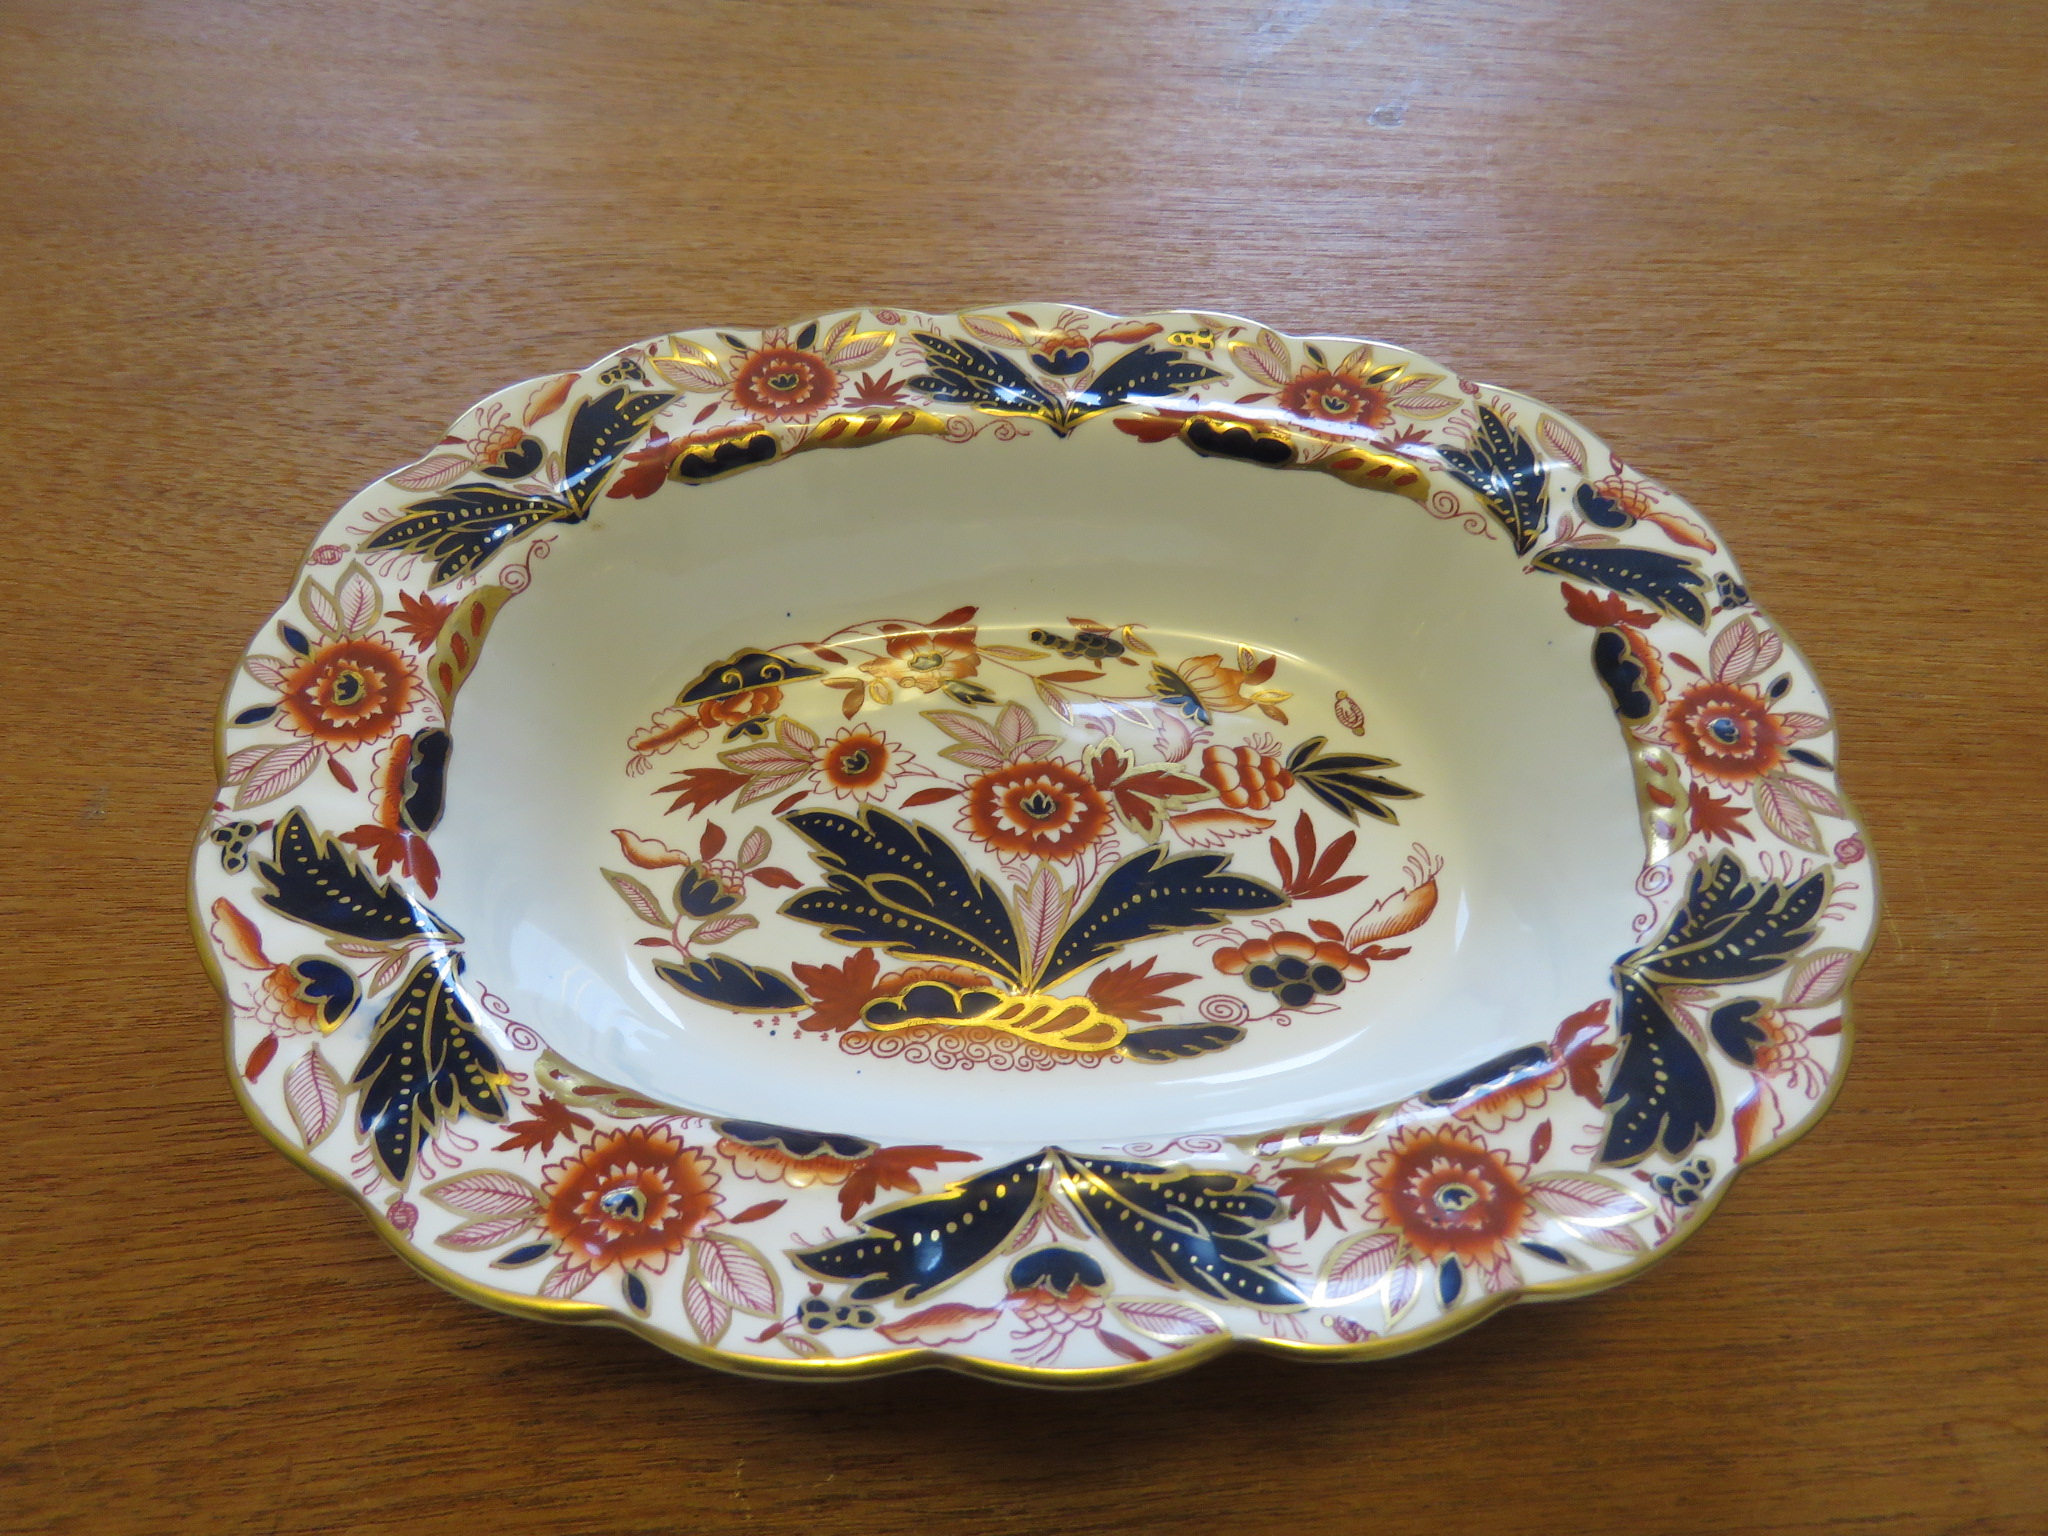 "Antique Vegetable Bowl Serving Dish Imari Booths DOVEDALE A8044 10"" Oval (POT-138)"